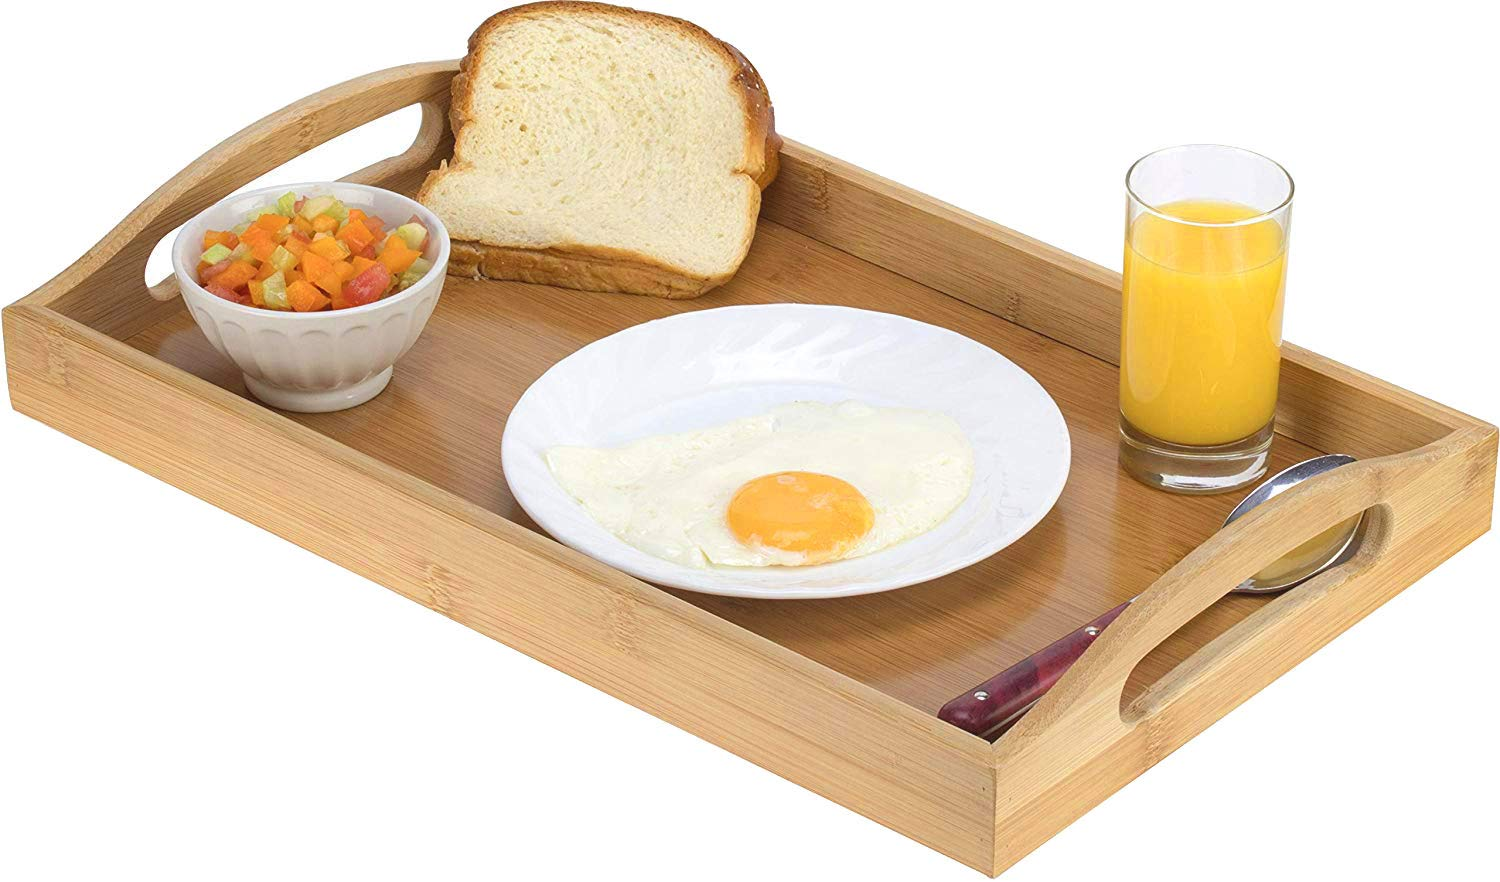 Serving tray bamboo - wooden tray with handles - Great for dinner trays, tea tray, bar tray, breakfast Tray, or any food tray - good for parties or bed tray